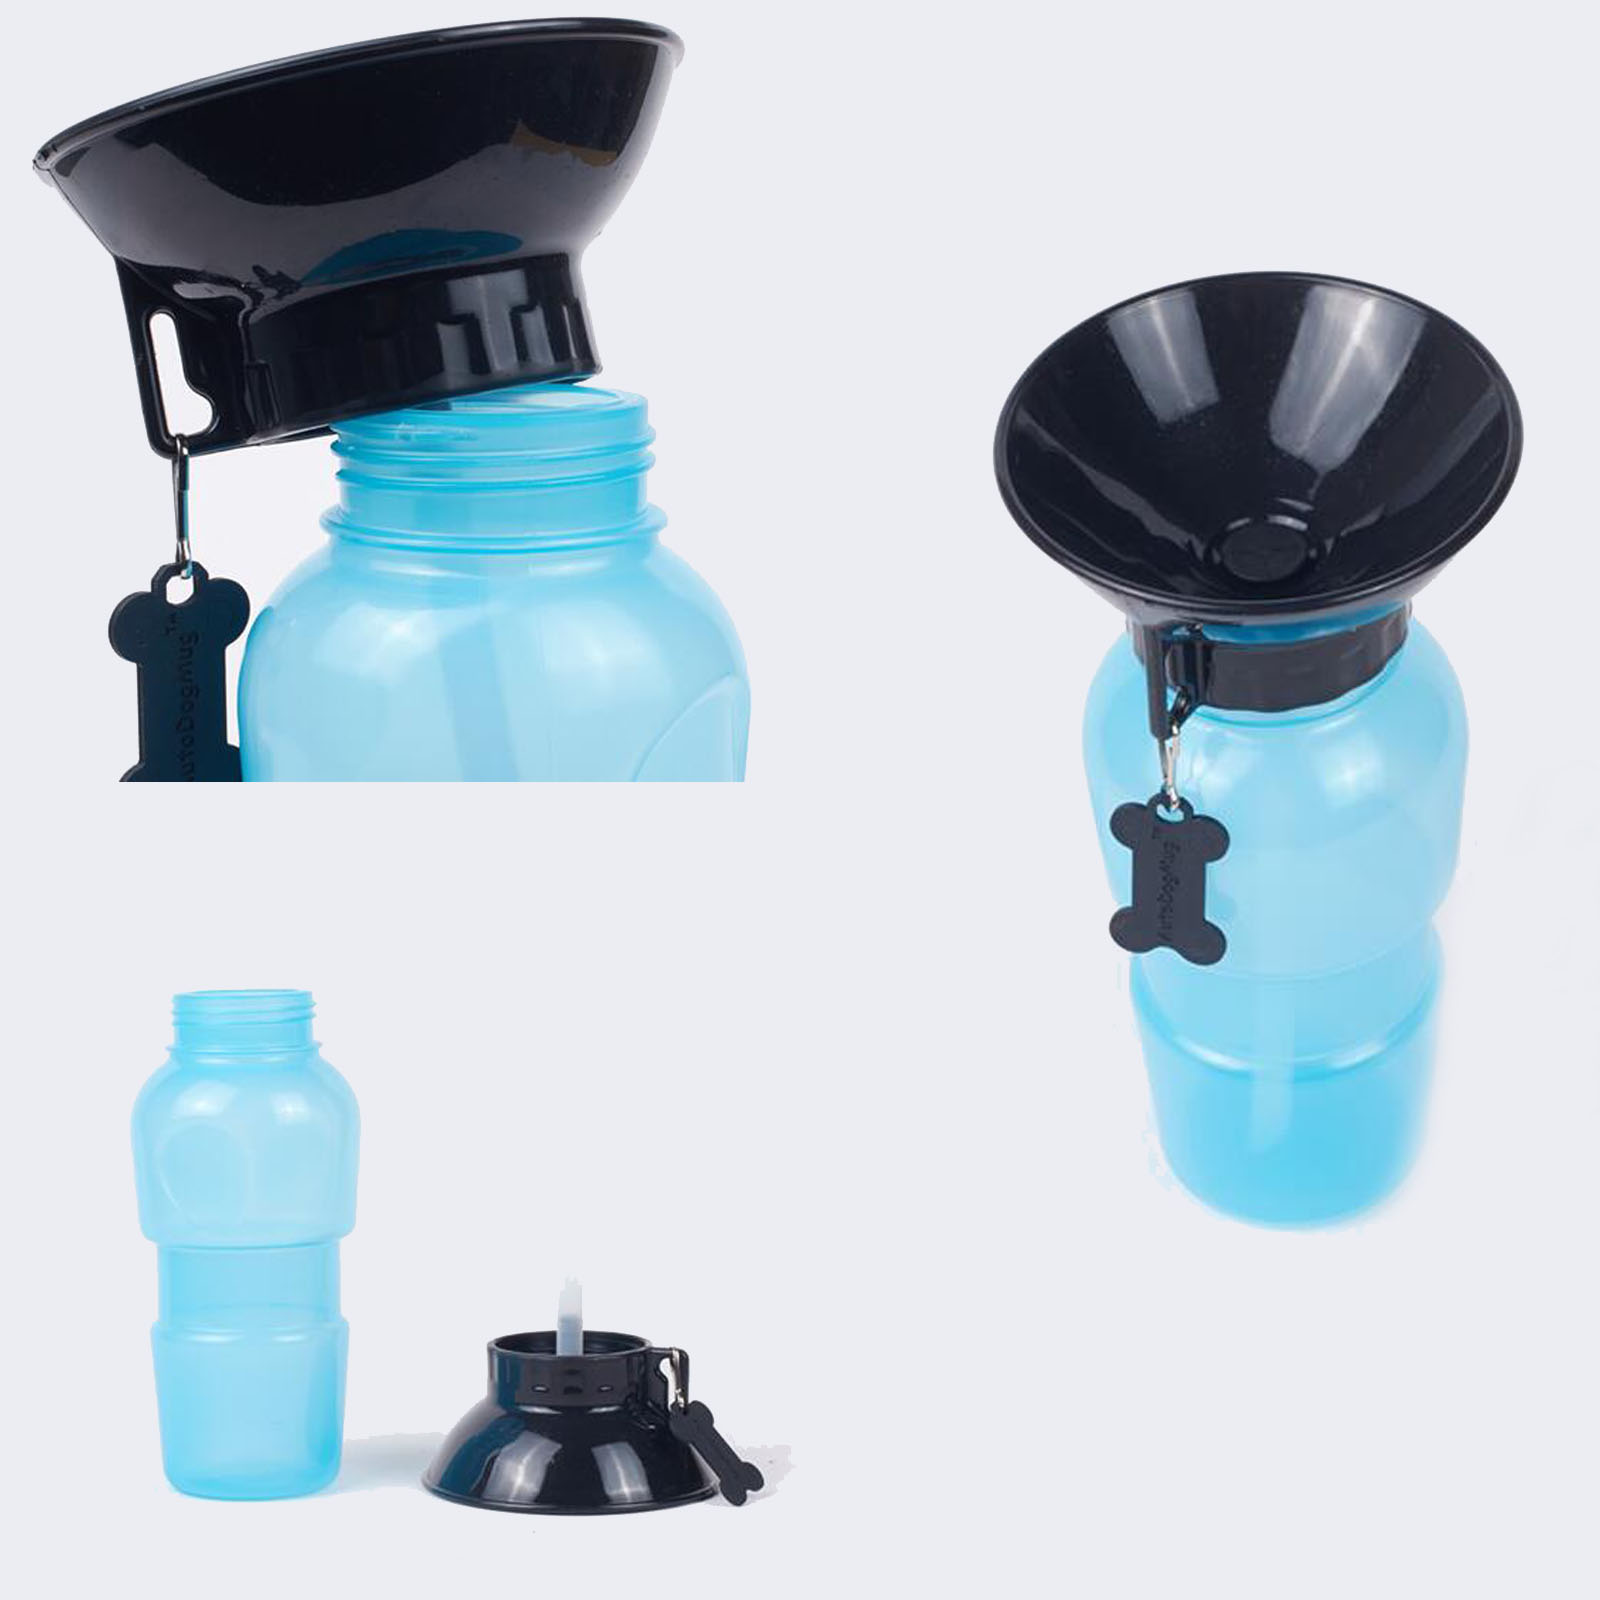 haustiere outdoor trinkflasche wasserspender wasserflasche reisenapf hunde ebay. Black Bedroom Furniture Sets. Home Design Ideas